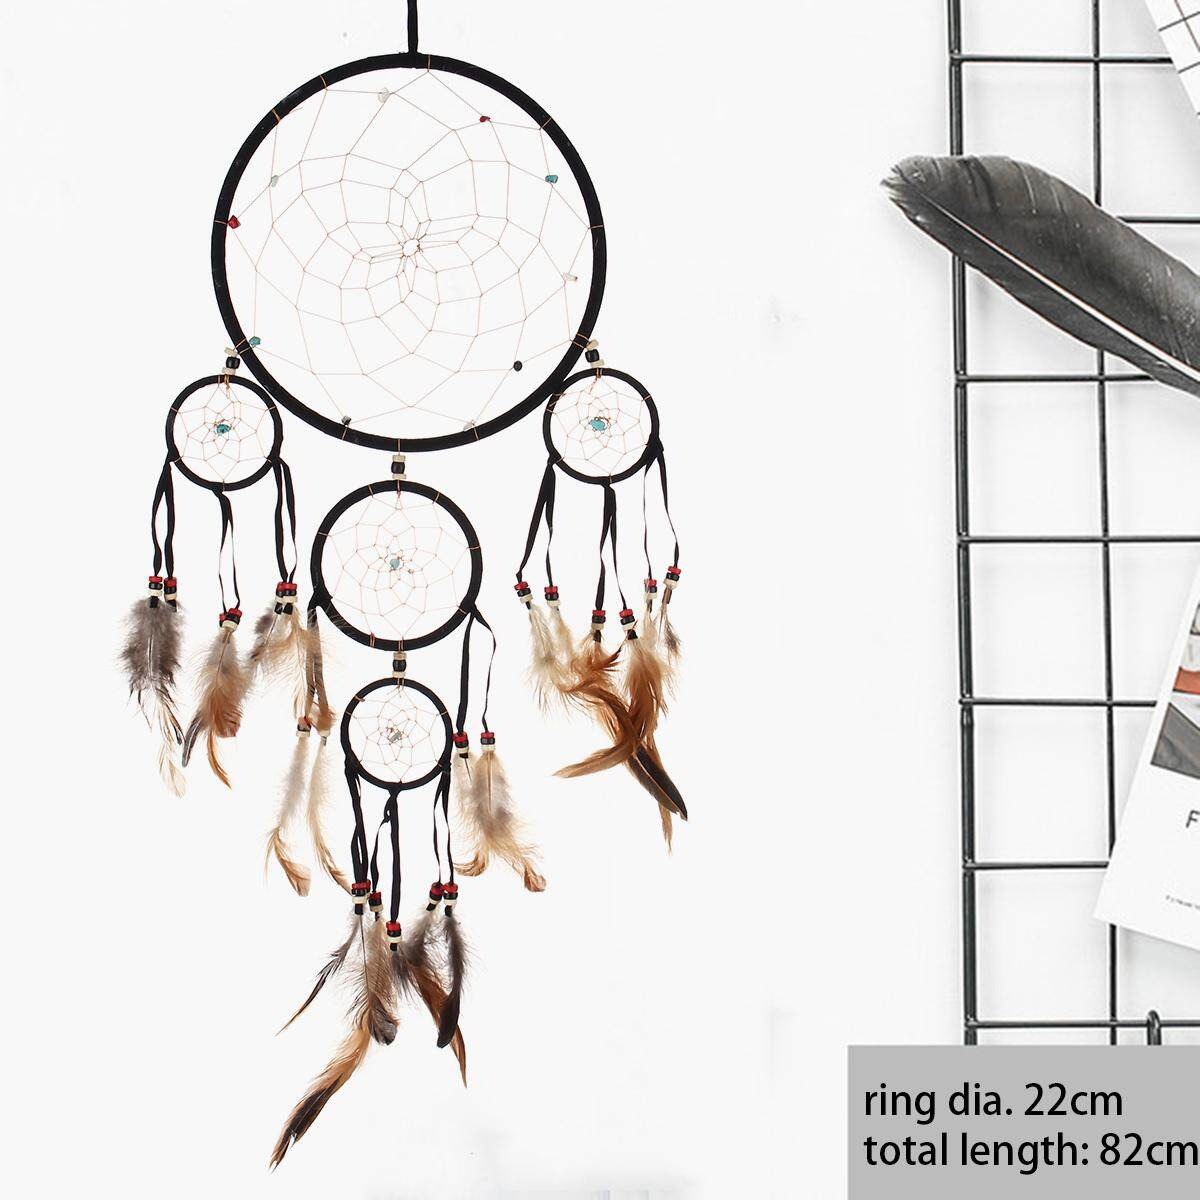 Large Stunning Jet Black Suede Leather Dream Catcher Long 80 Cm Total Length By Freebang.